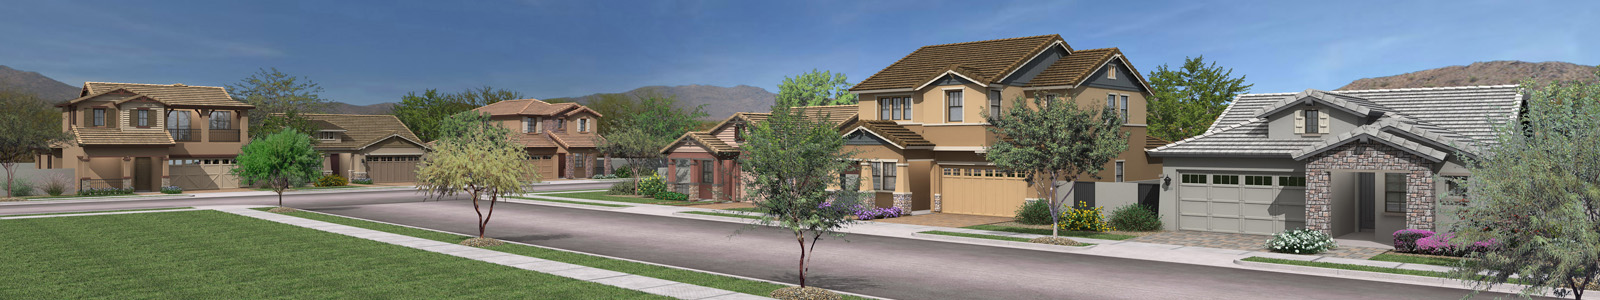 Lakeview Trails At Morrison Ranch By Fulton Homes Classy 5 Bedroom Homes For Sale In Gilbert Az